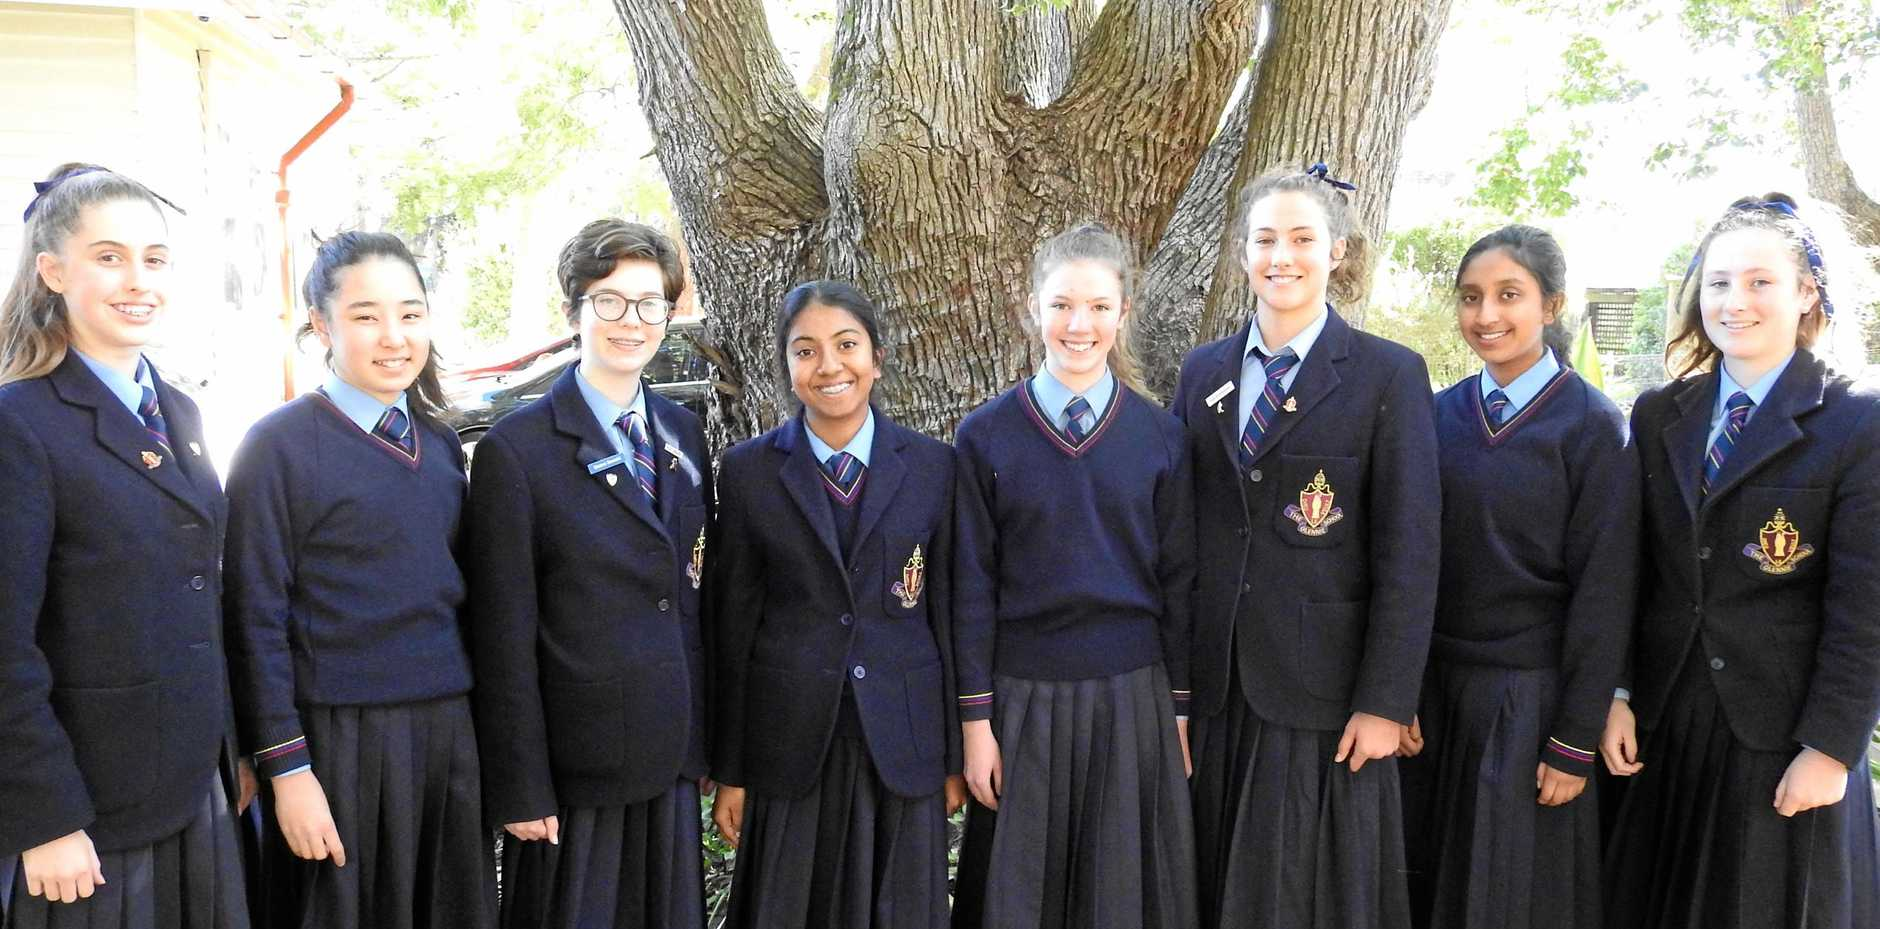 SMART STUDENTS: The Glennie School Year 9 students (from left) Amy Grant, Hana Doherty, Emma Donald, Sandali Gange, Olivia Taylor, Kari Donaldson, Apoorva Abeysundera and Genevieve Dean at The da Vinci Decathlon.